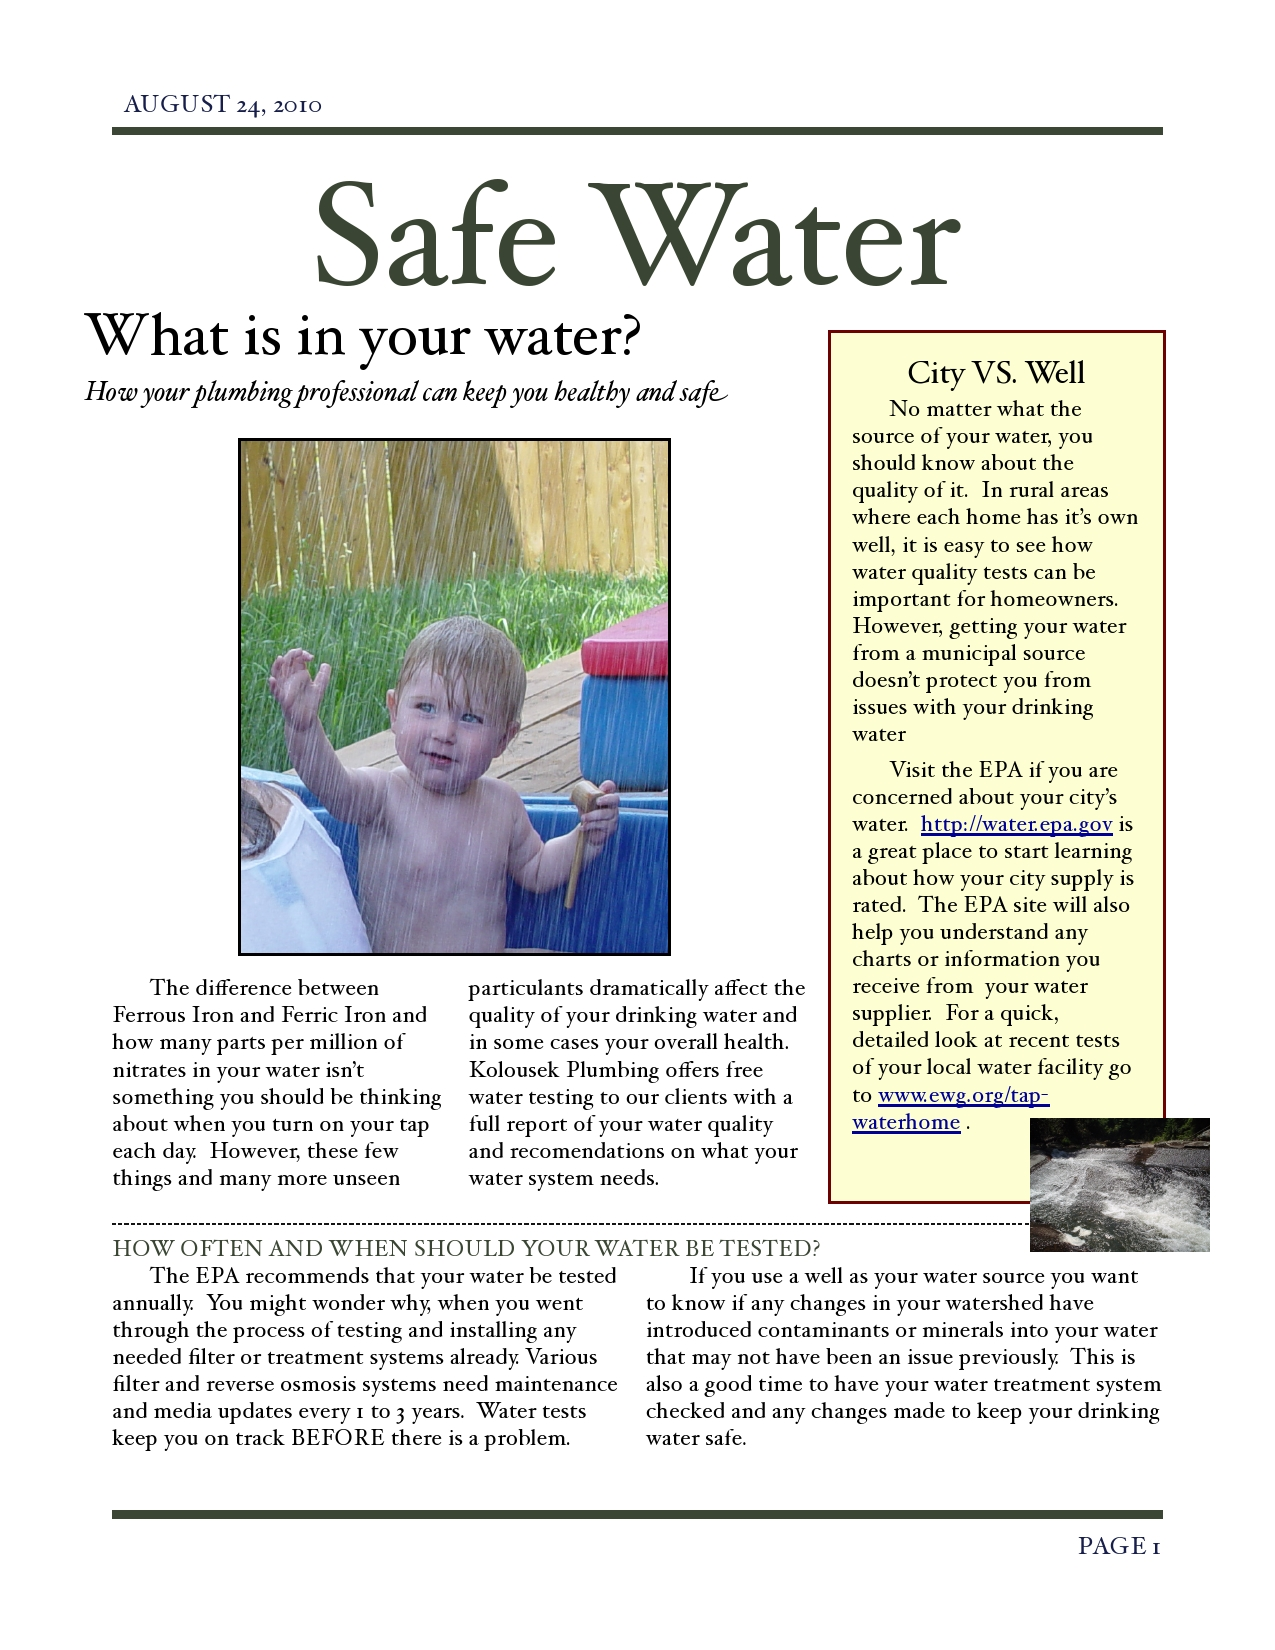 safe water page_page001